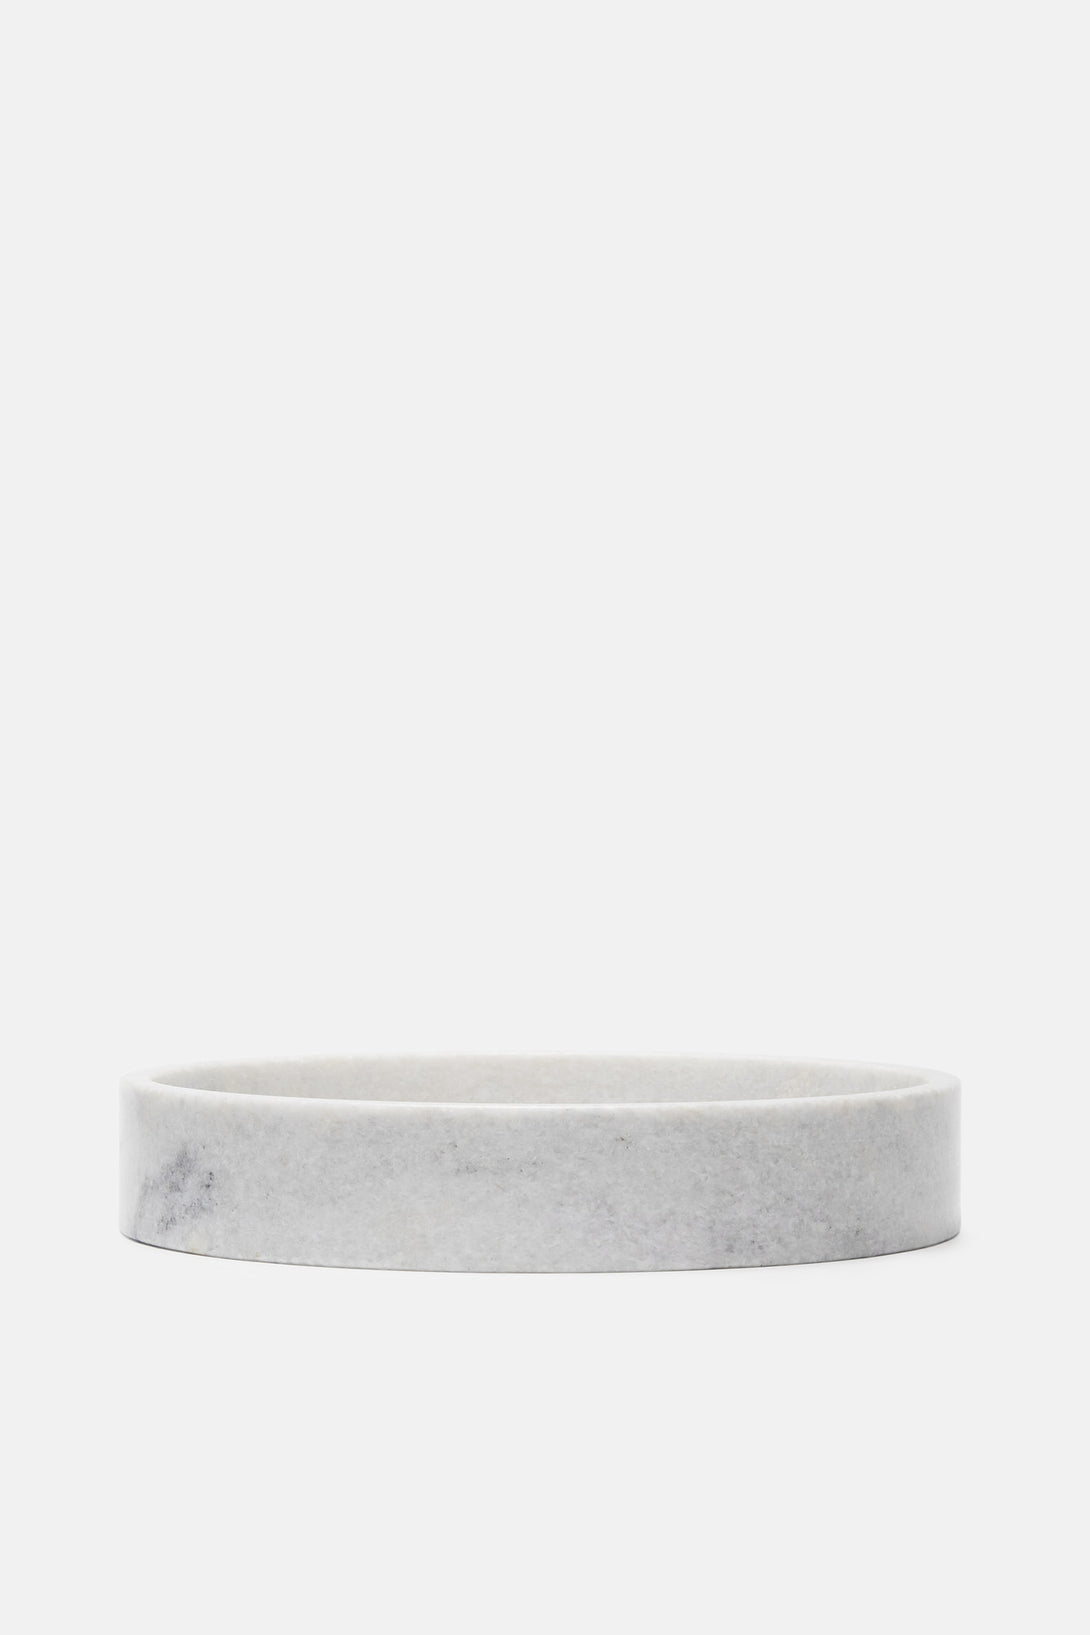 Straight Edge Marble Bowl - White